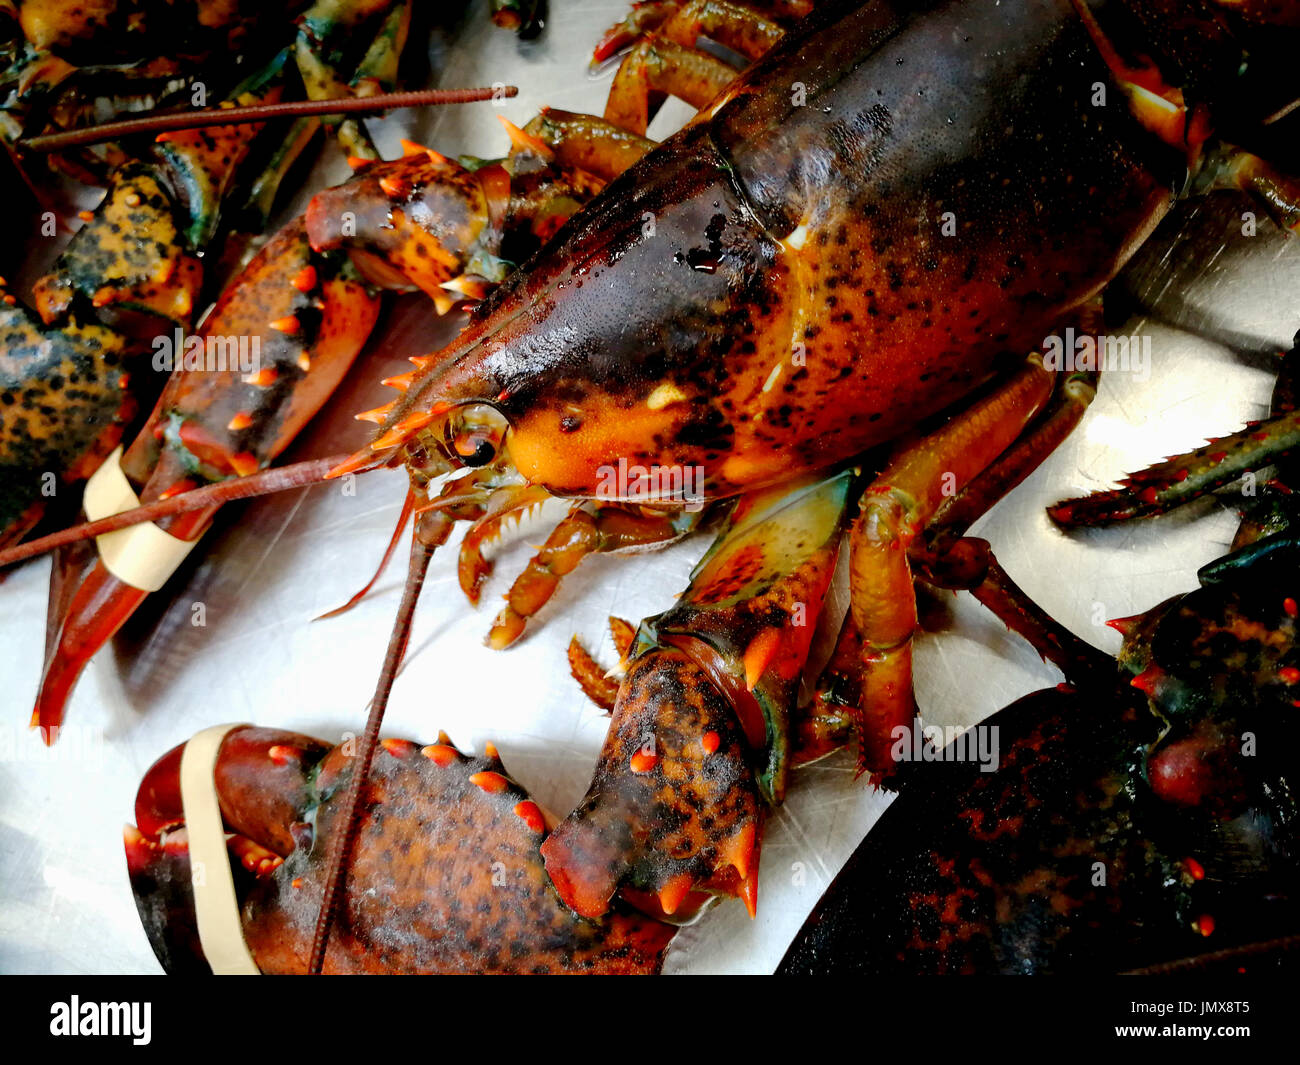 Live lobster in the market - Stock Image